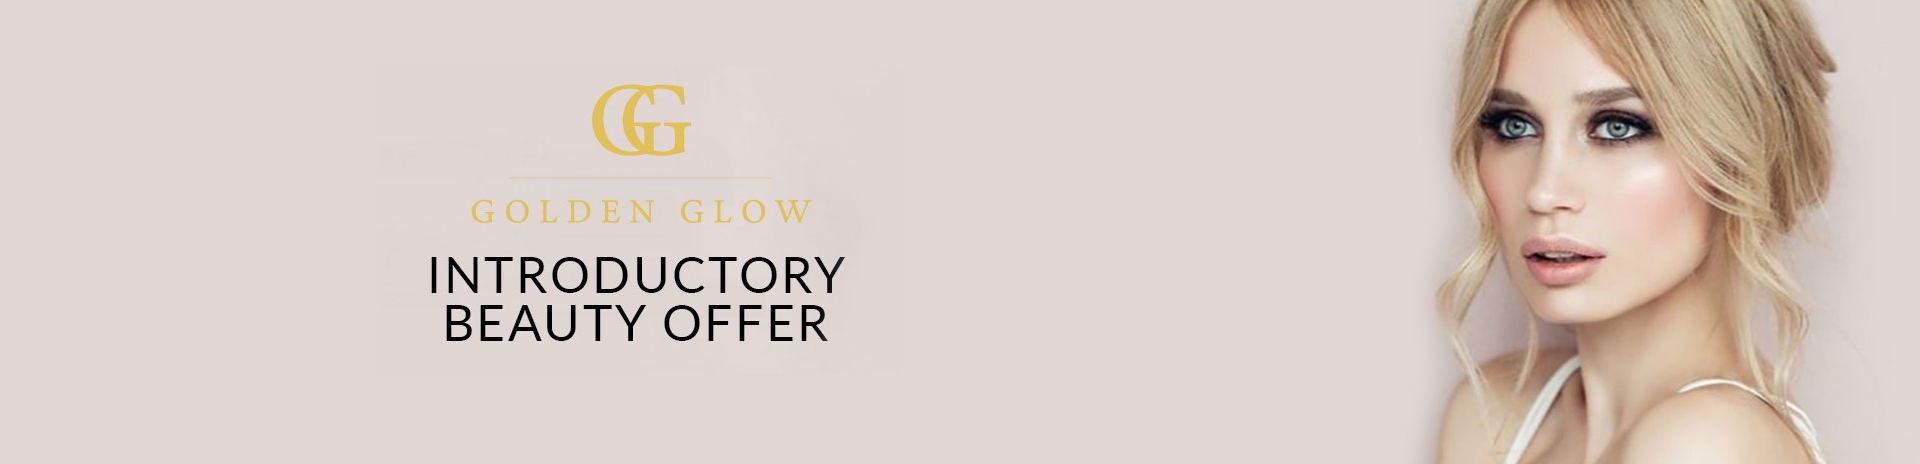 Introductory Beauty Offer at Golden Glow Aesthetics Clinic in Alton, Hampshire